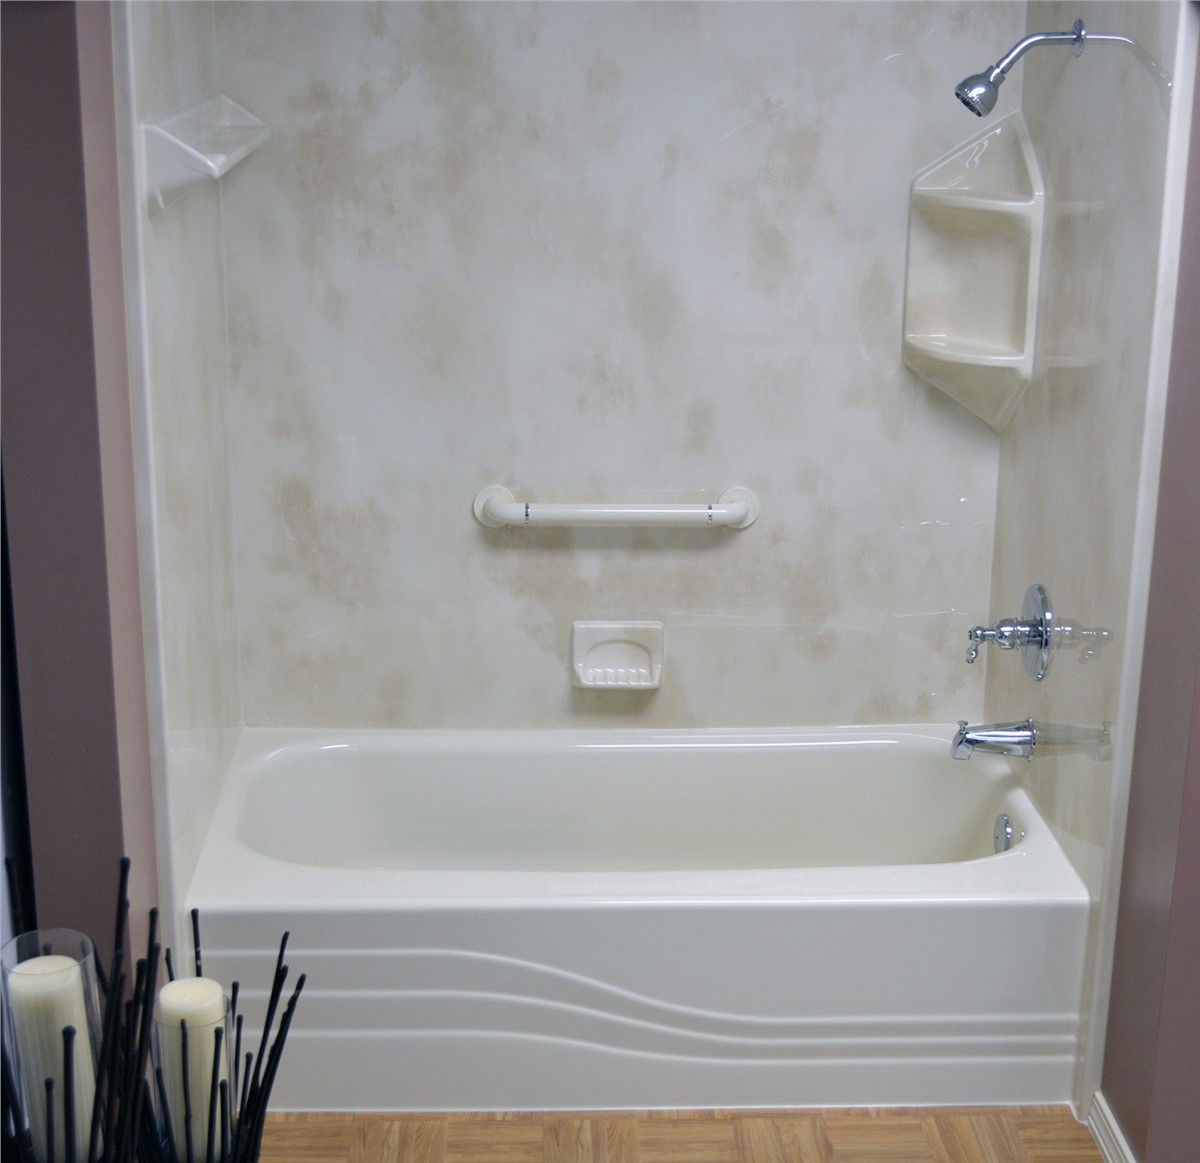 New bathtubs syracuse syracuse new bathtub installation for Renew bathroom